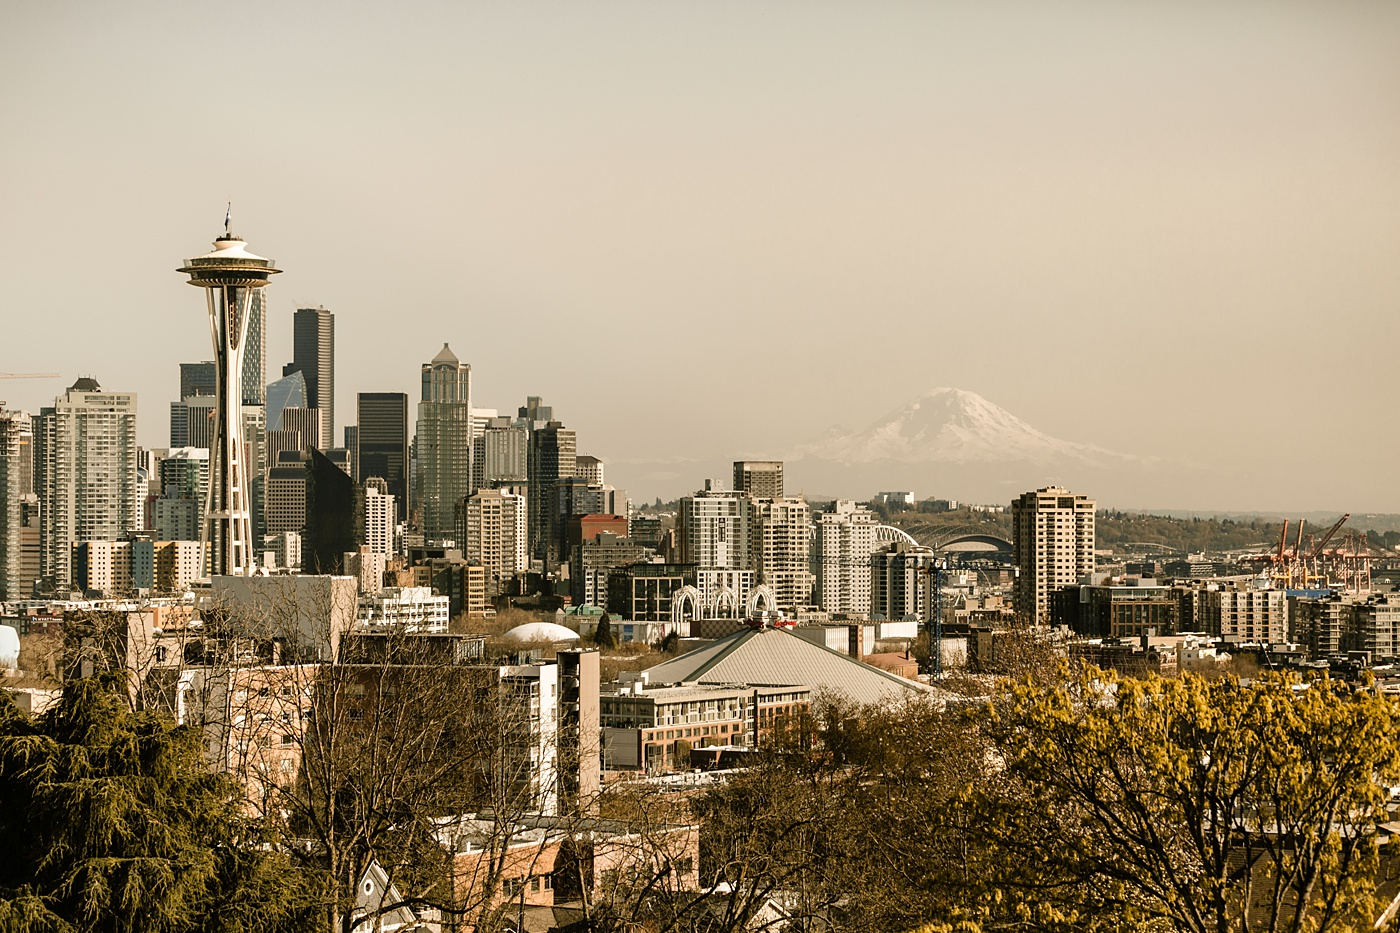 seattle city skyline with space needle and mount rainier